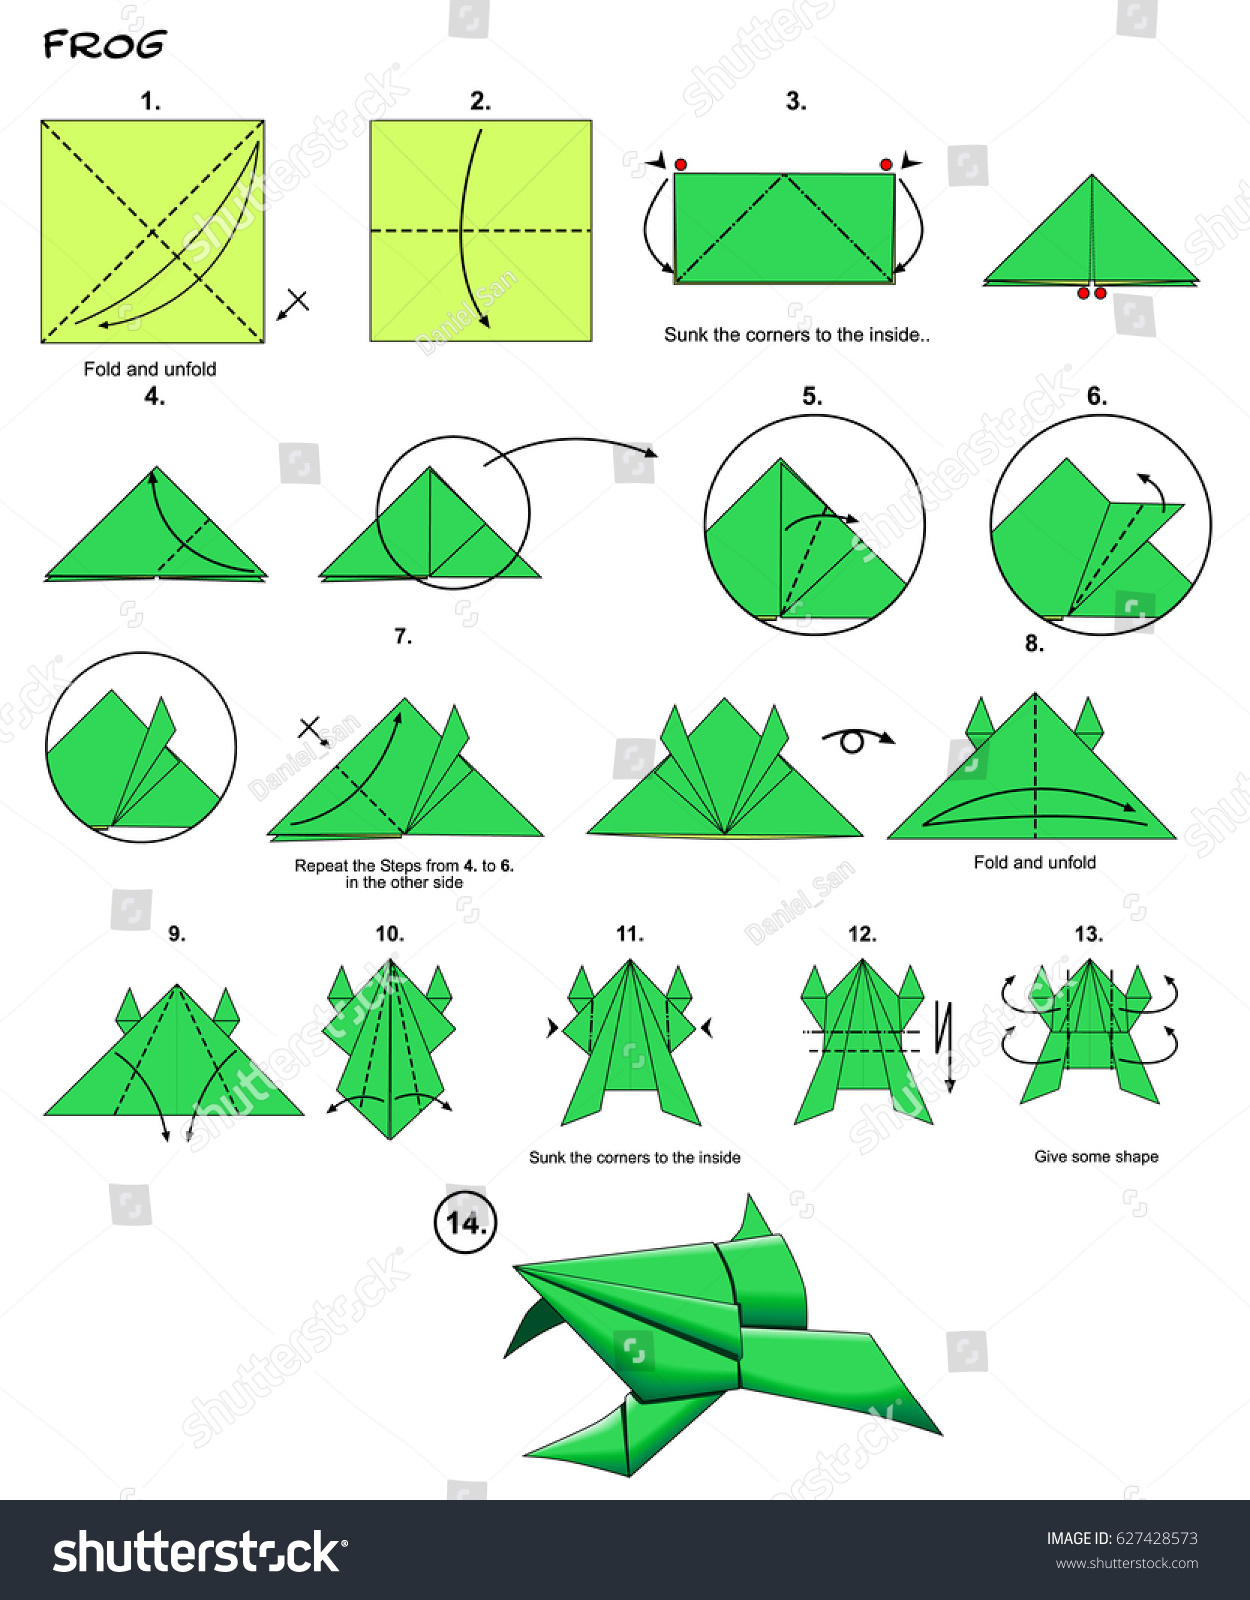 Origami Animal Traditional Frog Diagram Instructions Stock